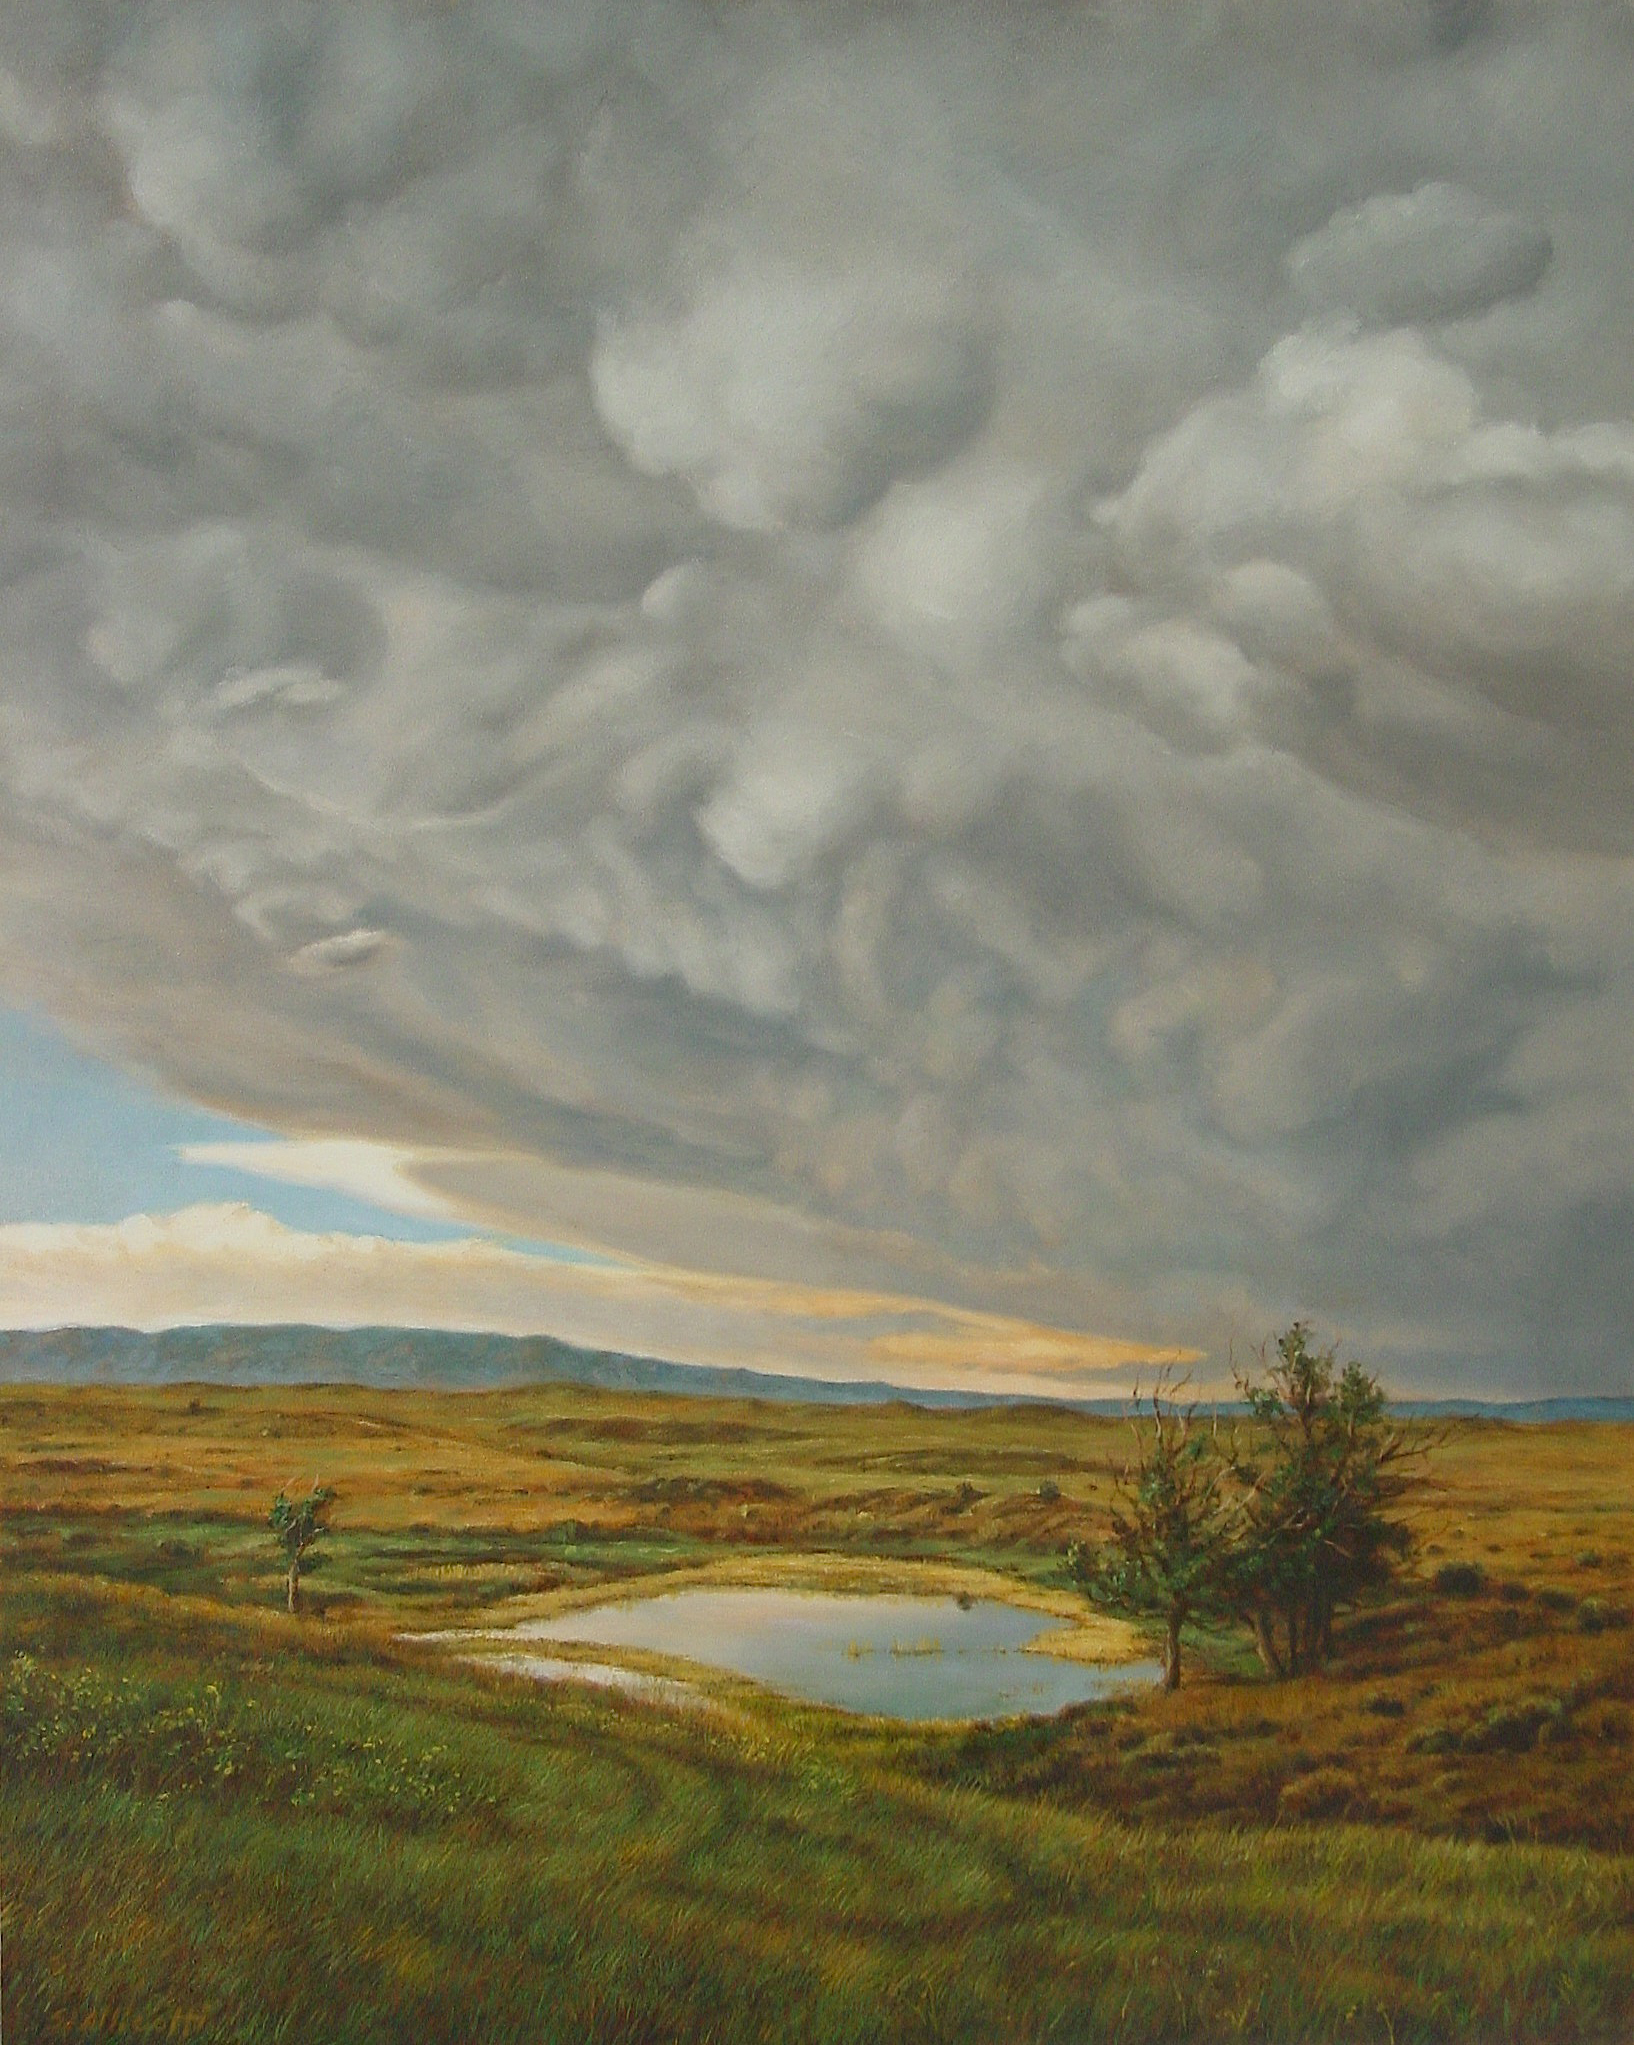 "SHARON ALLICOTTI  is an esteemed artist who lives and works in Los Angeles. After retiring from launching the Laguna College of Art & Design's MFA program, she works in her studio nonstop while also mentoring grad students to pass on the guardianship her teacher's passed on to her through carrying on the endless continuum of the contemporary canon of art.  Above: "" Pond, Wyoming Storm "" 20"" x 16"" Oil on Canvas  (Bees love the clover fields she captured in this landscape!)"